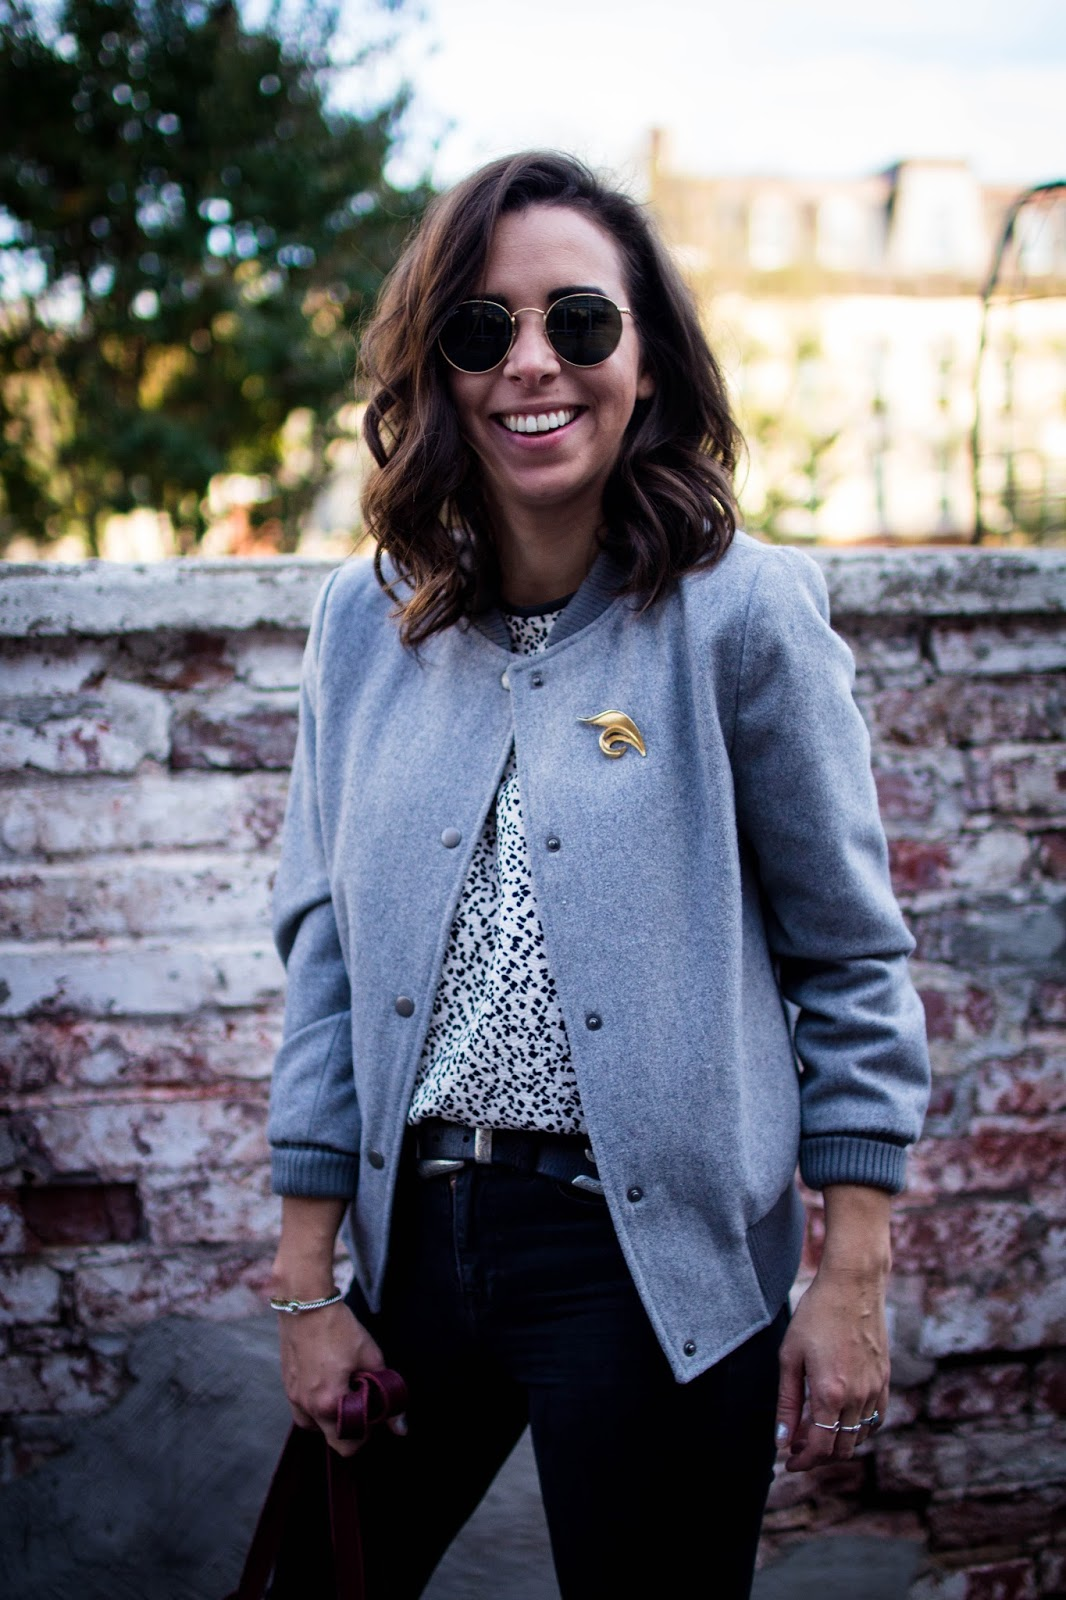 How to style a bomber jacket.